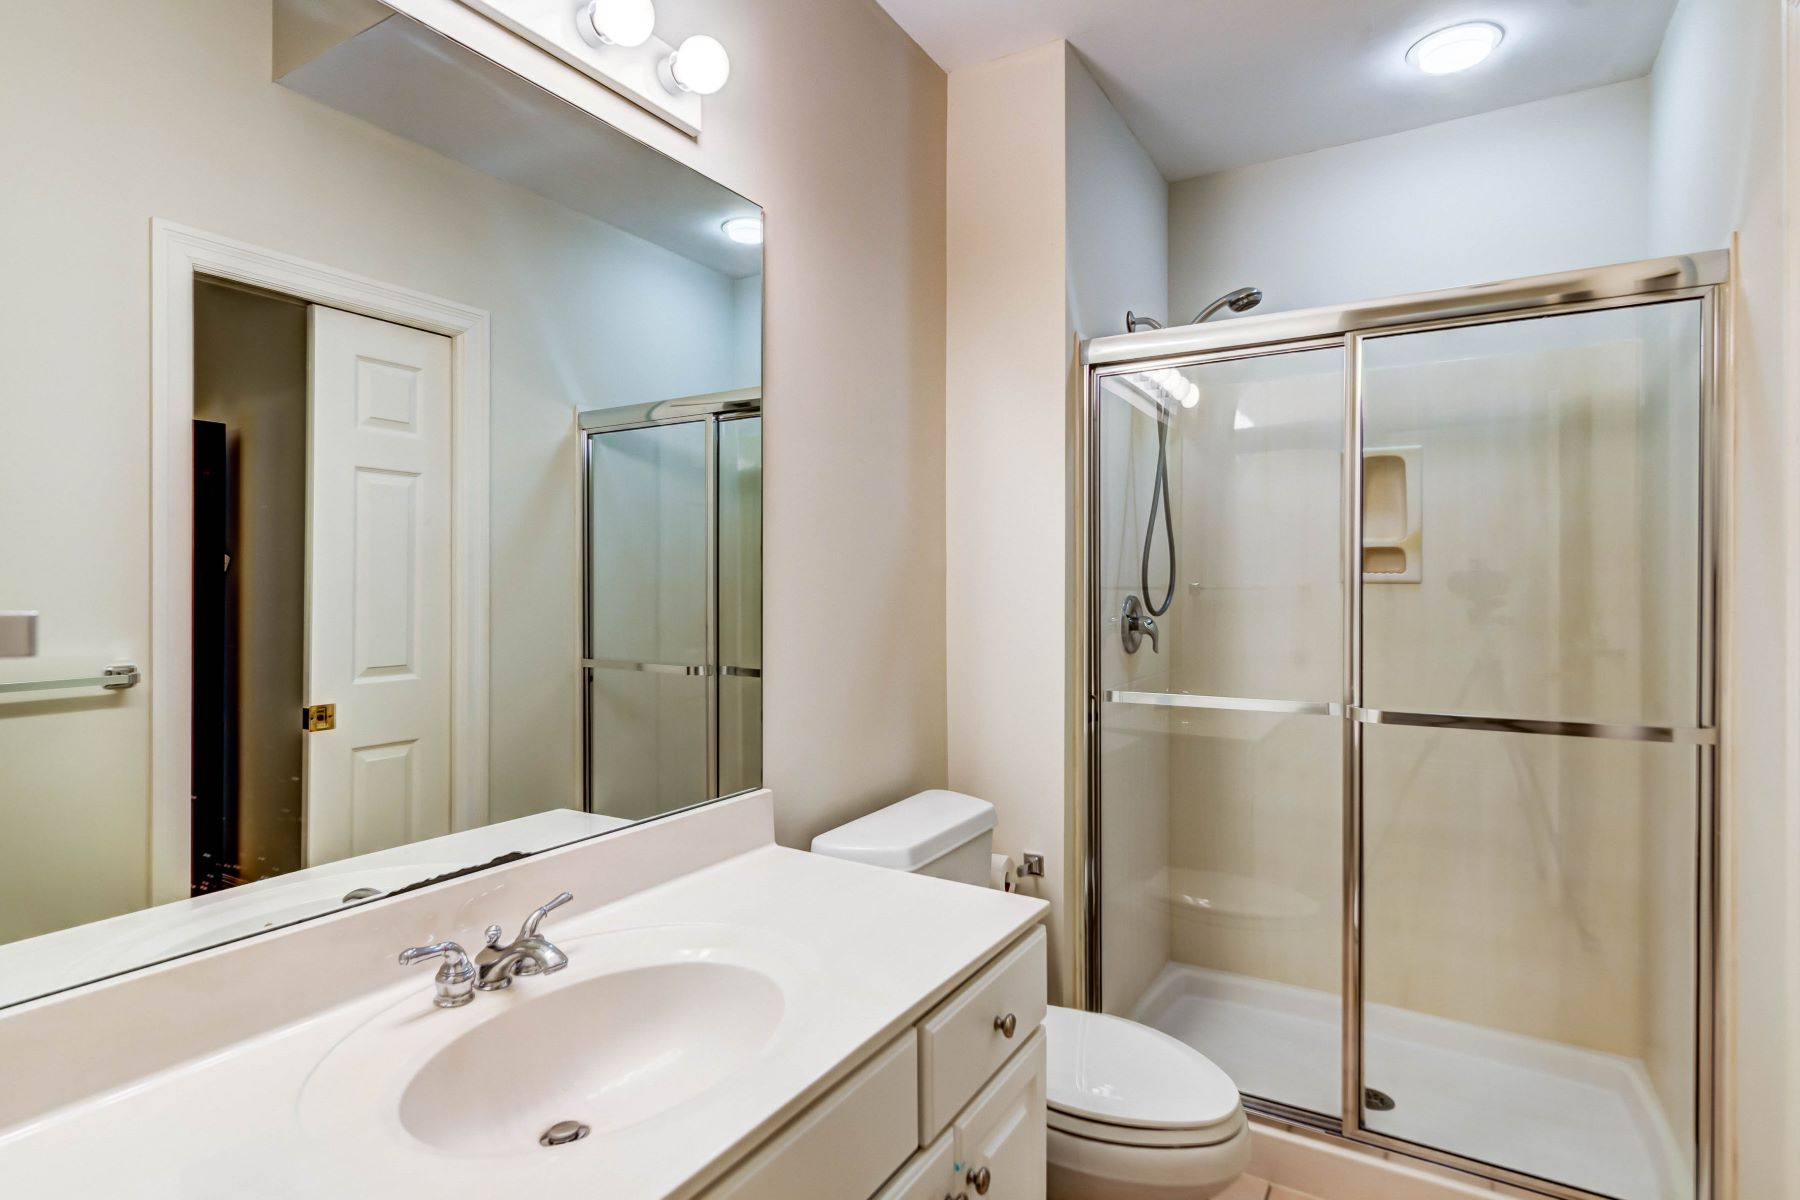 Additional photo for property listing at Custom Newer Home in Ladue School District 121 White Bridge Meadows Lane Creve Coeur, Missouri 63141 United States